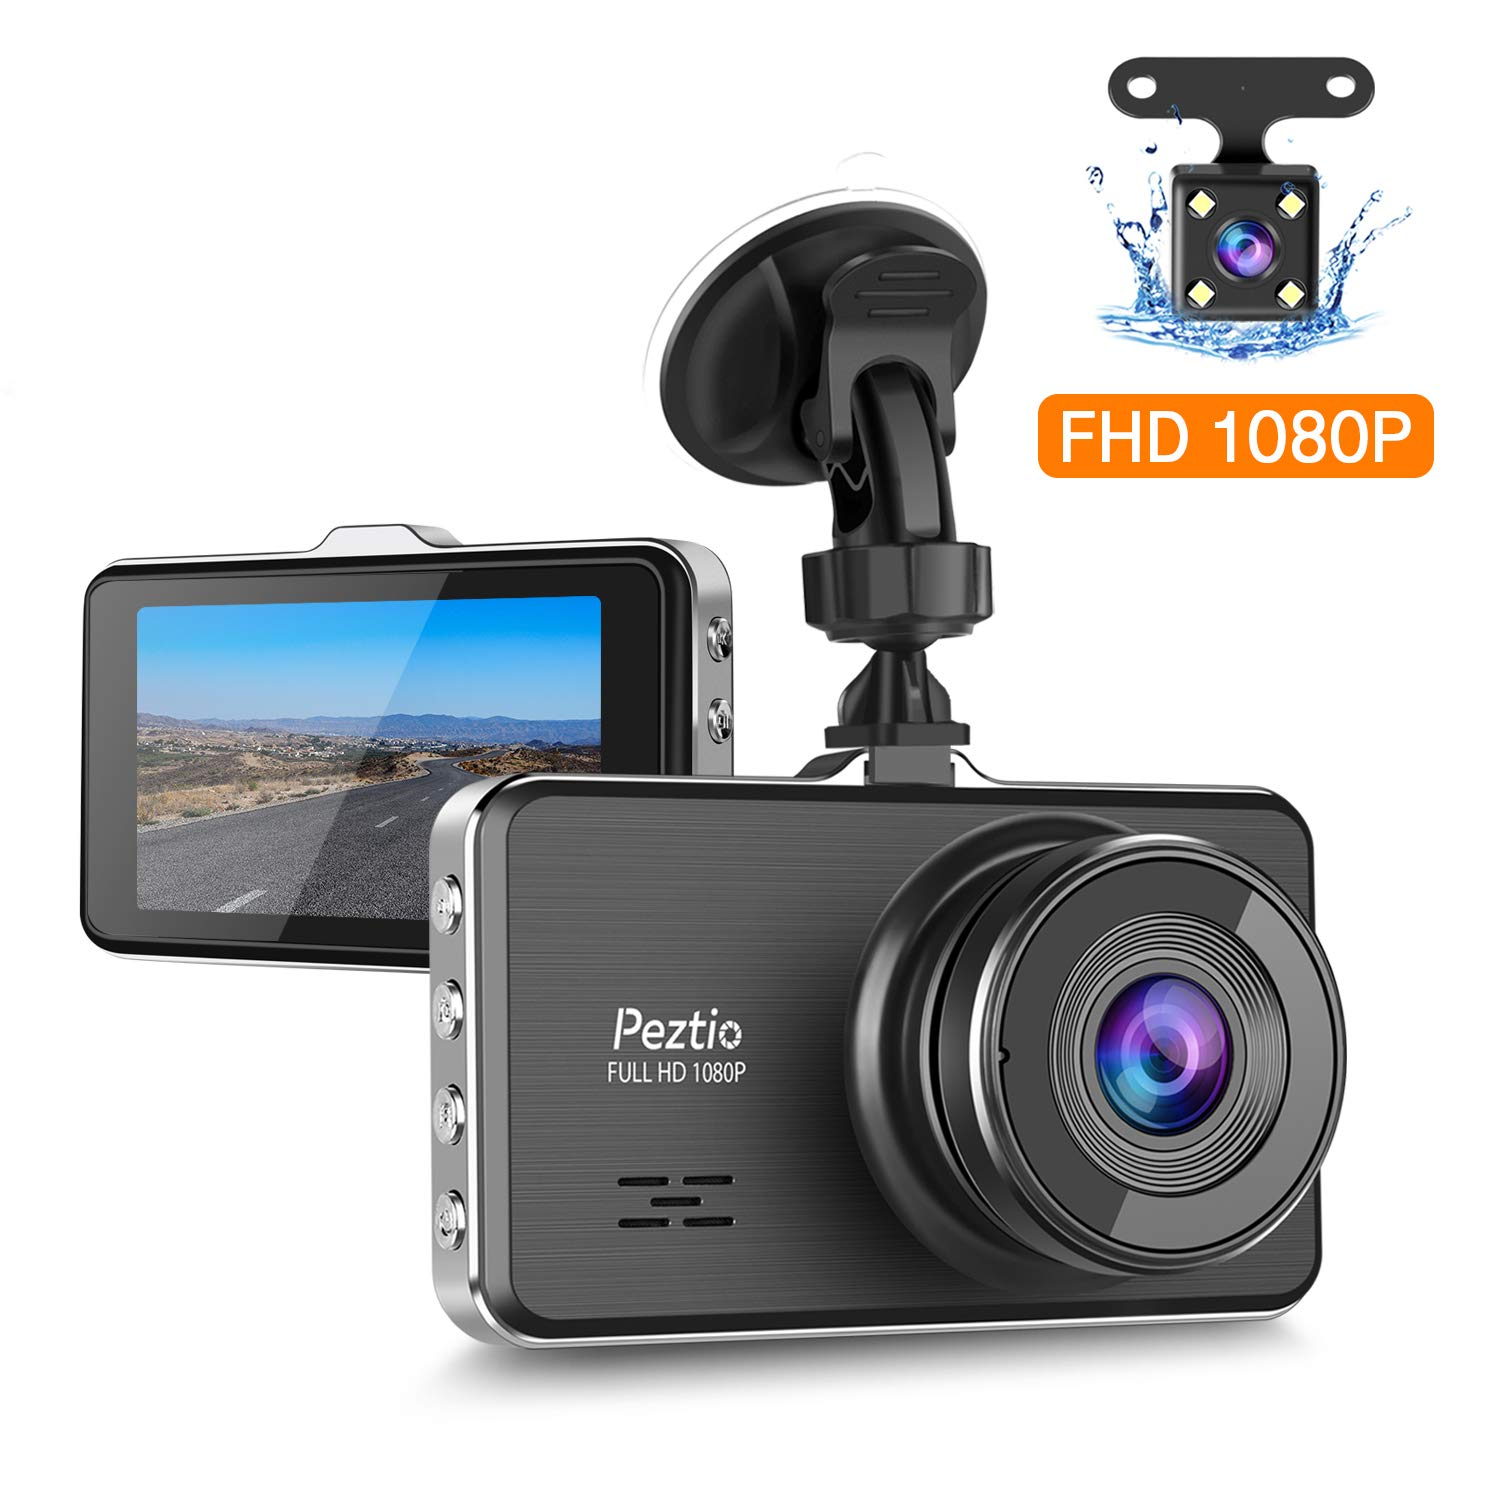 Peztio Dual Dash Cam Front and Rear, FHD 1080P Dash Camera for Cars, Car Dash Camera Recorder Upgraded Version Night Vision, 3 Inch IPS Screen, 170 Super Wide Angle, G Sensor, Parking Monitor, WDR by Peztio